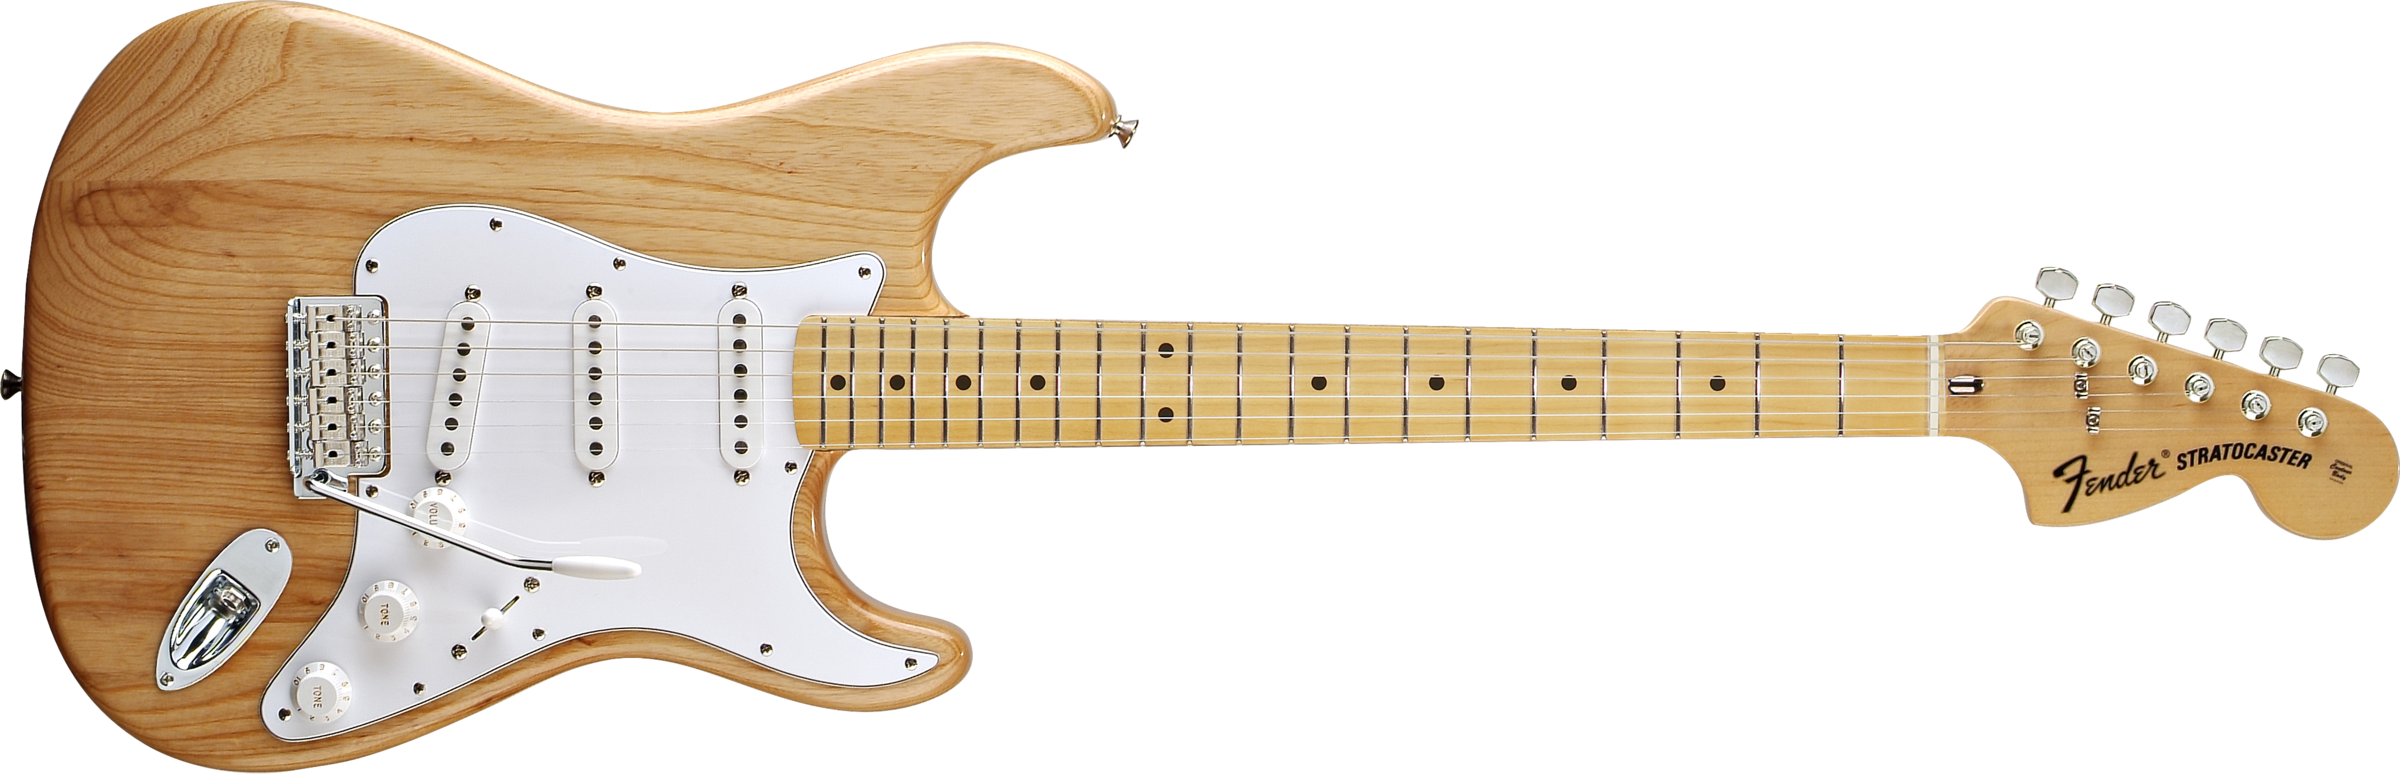 Classic Series 70s Stratocaster Classic Series Fender Fender Electric Guitar Electric Guitar Acoustic Bass Guitar